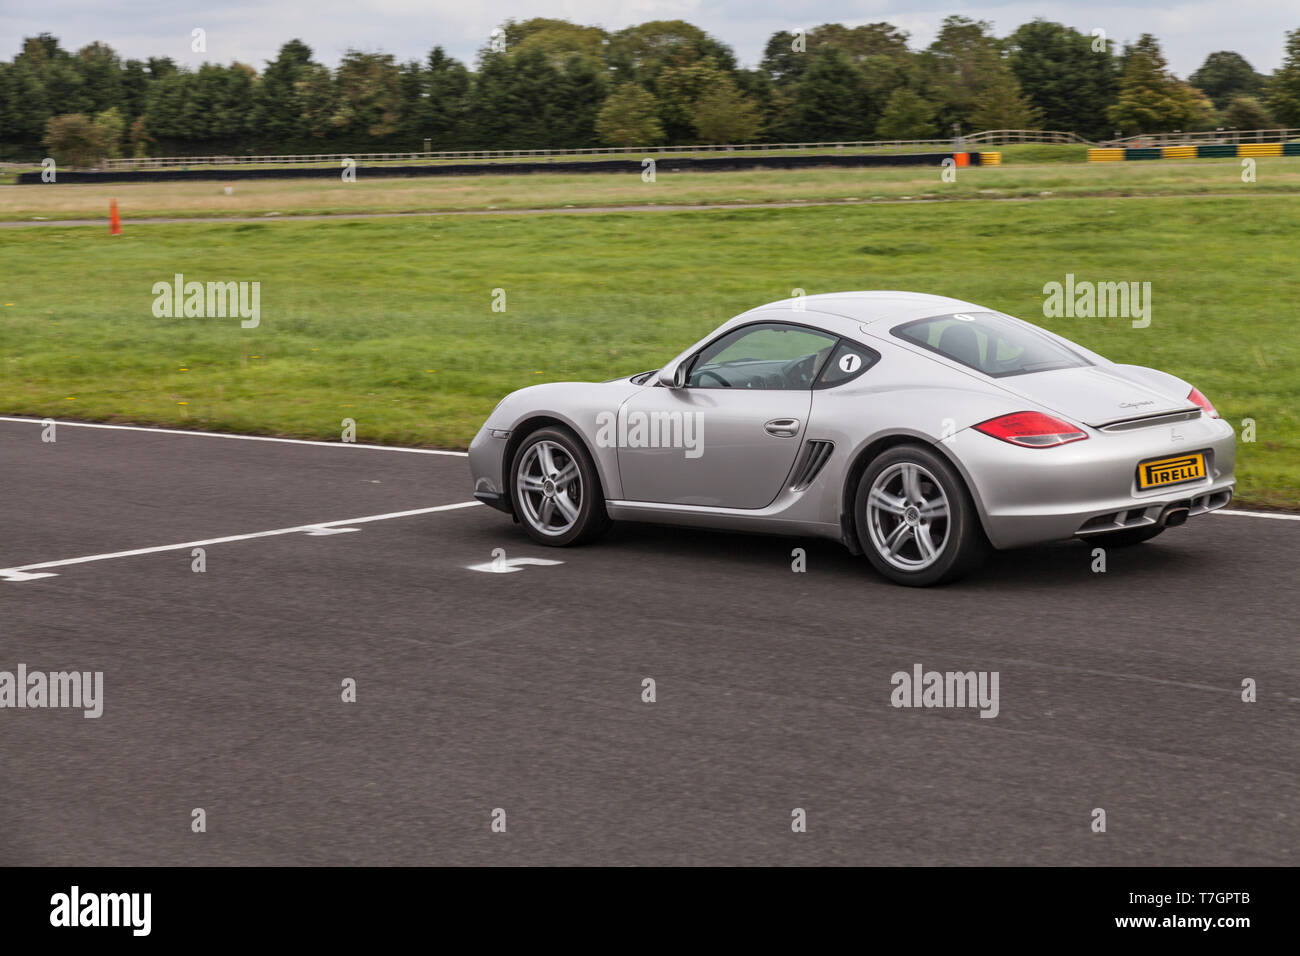 A Porsche Cayman sports car at Croft Motor Racing Circuit,North Yorkshire,England,UK Stock Photo